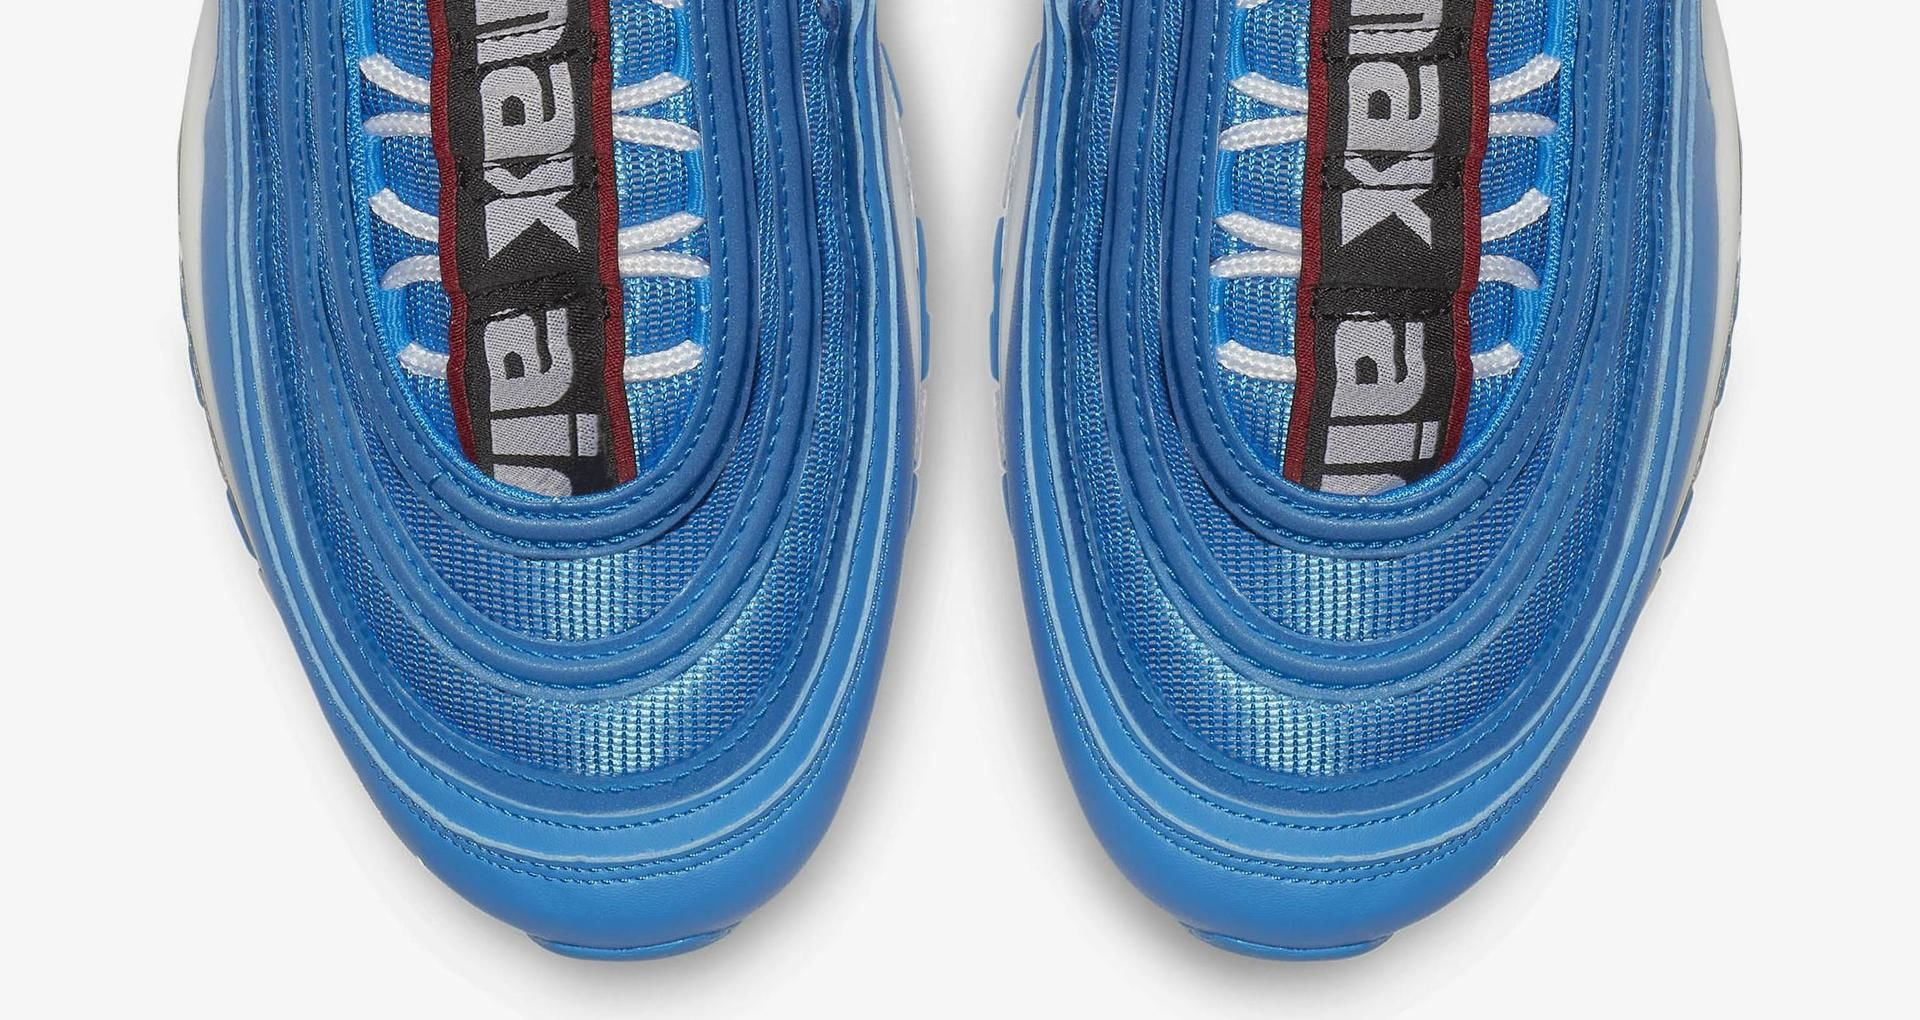 nike-air-max-97-premium-blue-hero-black-white-312834-401-release-20181121